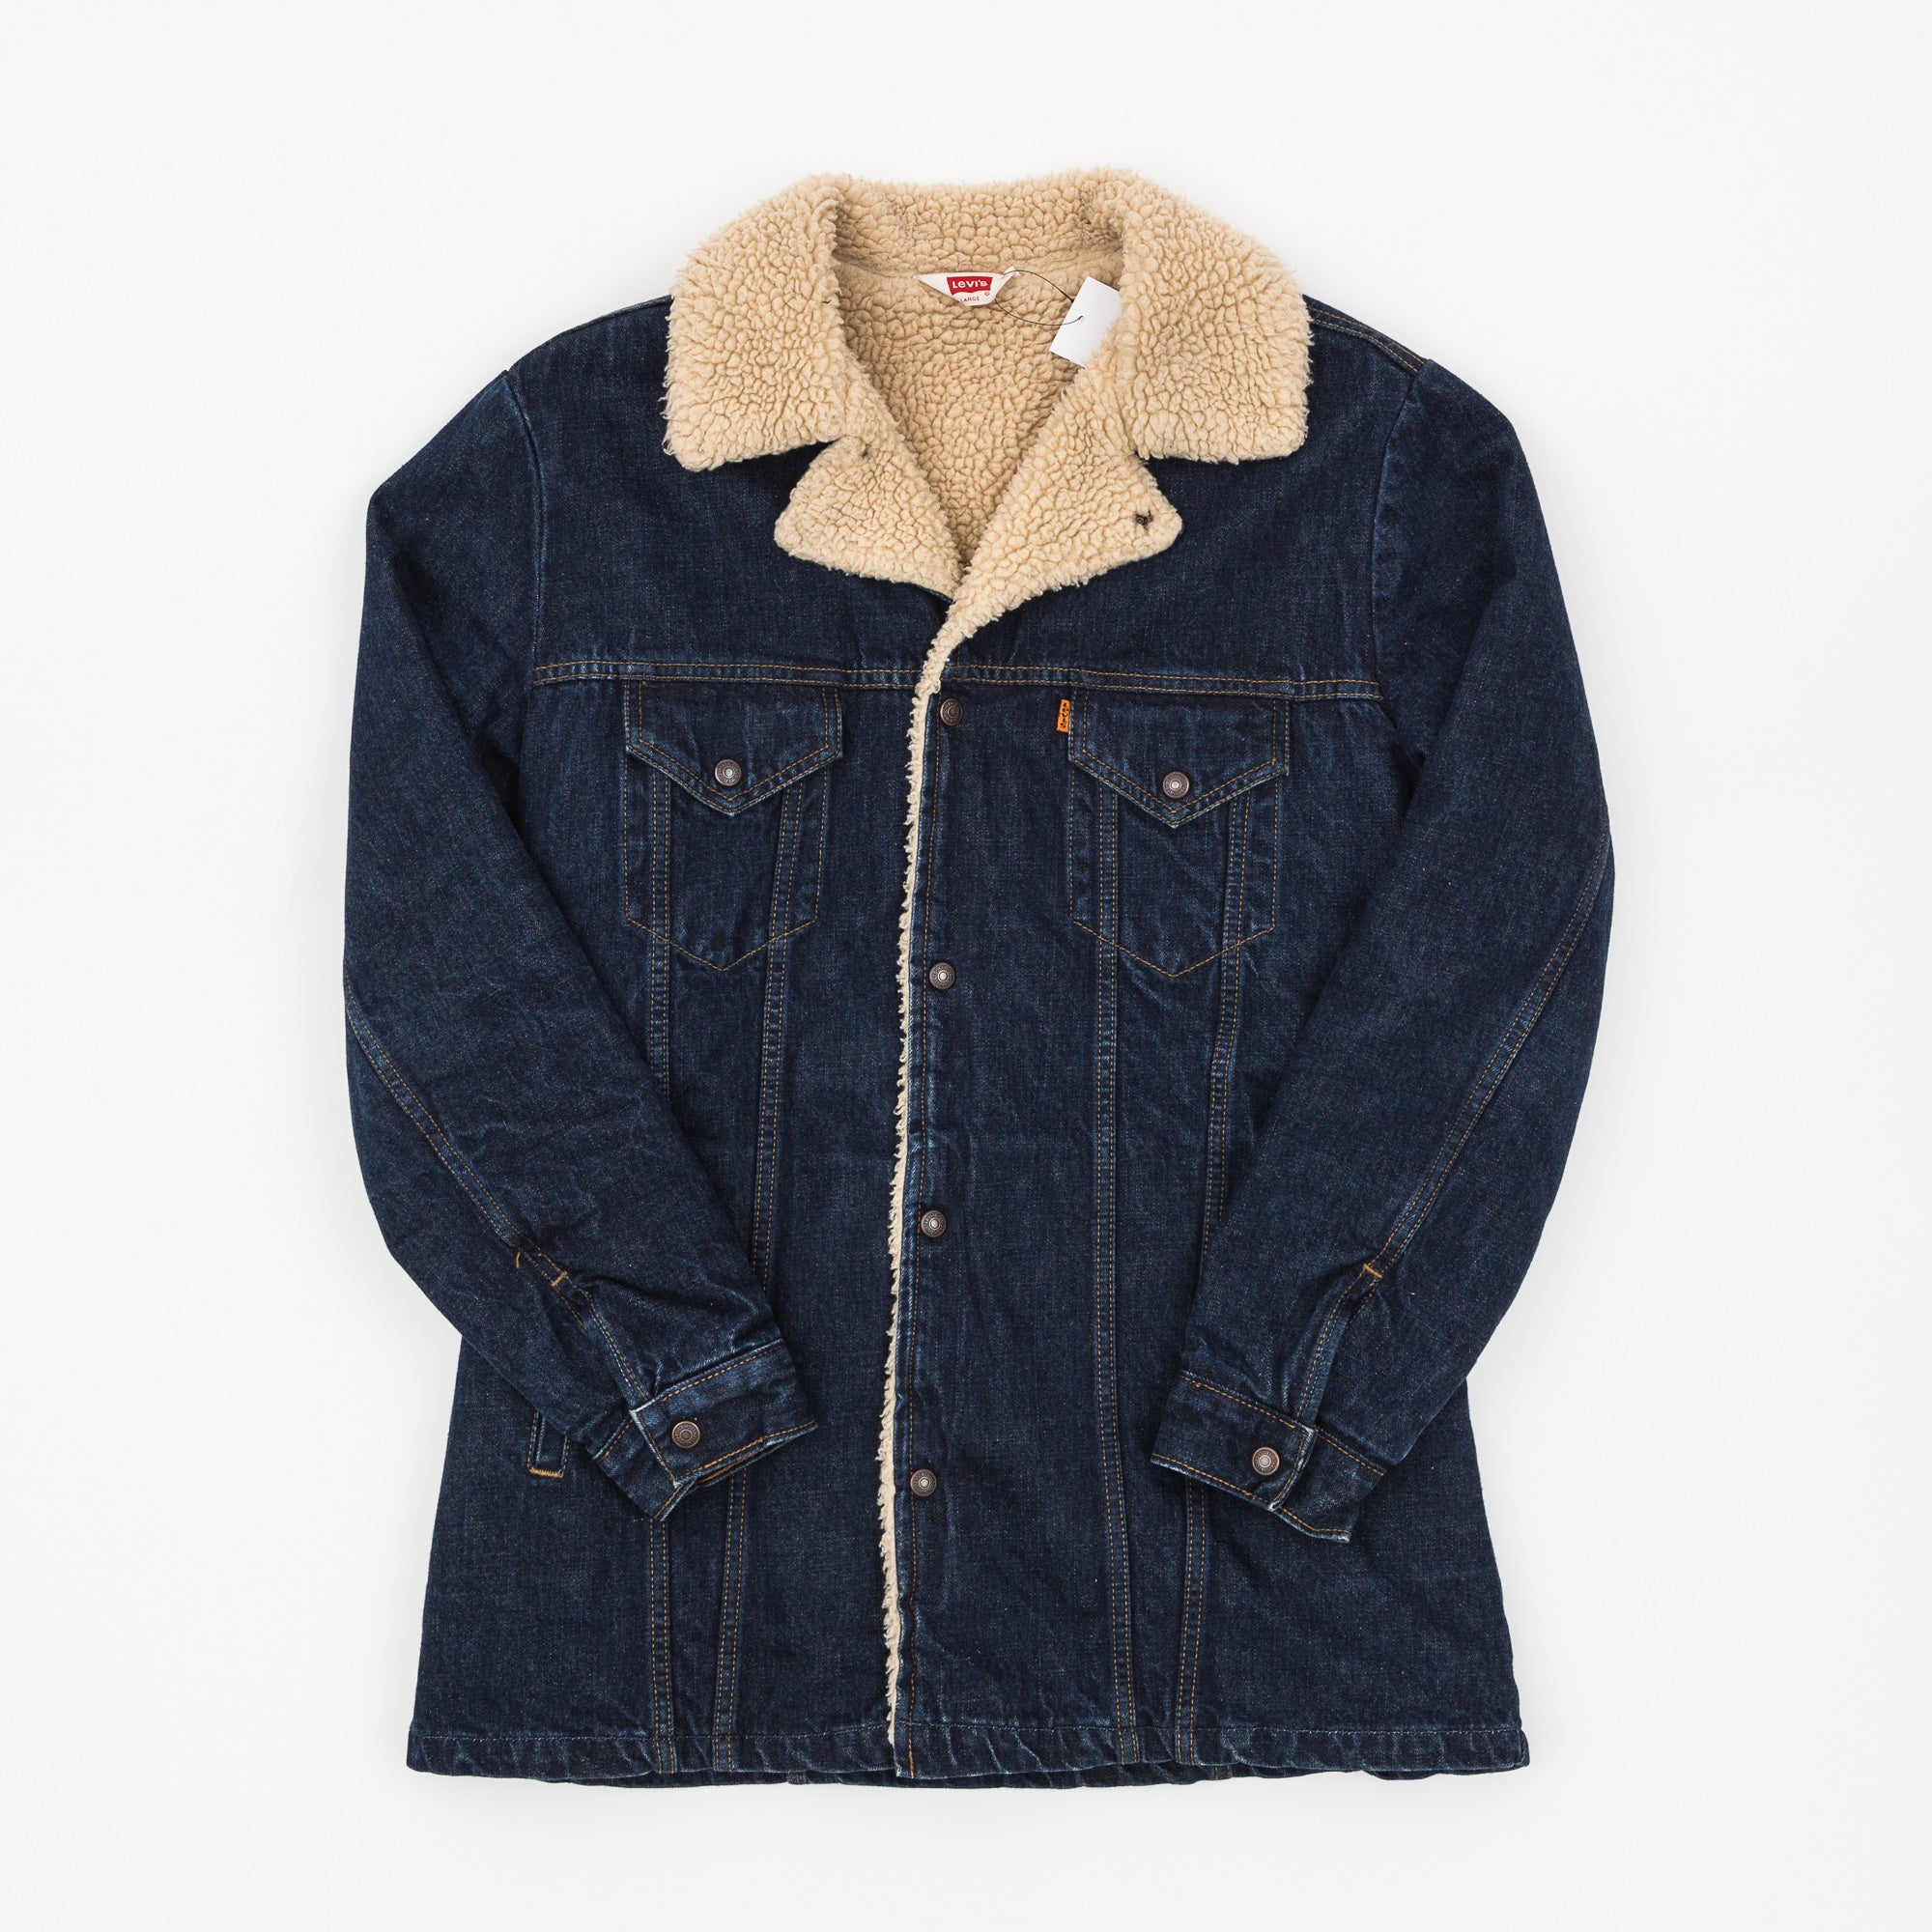 Levi's Sherpa Trucker Denim Jacket